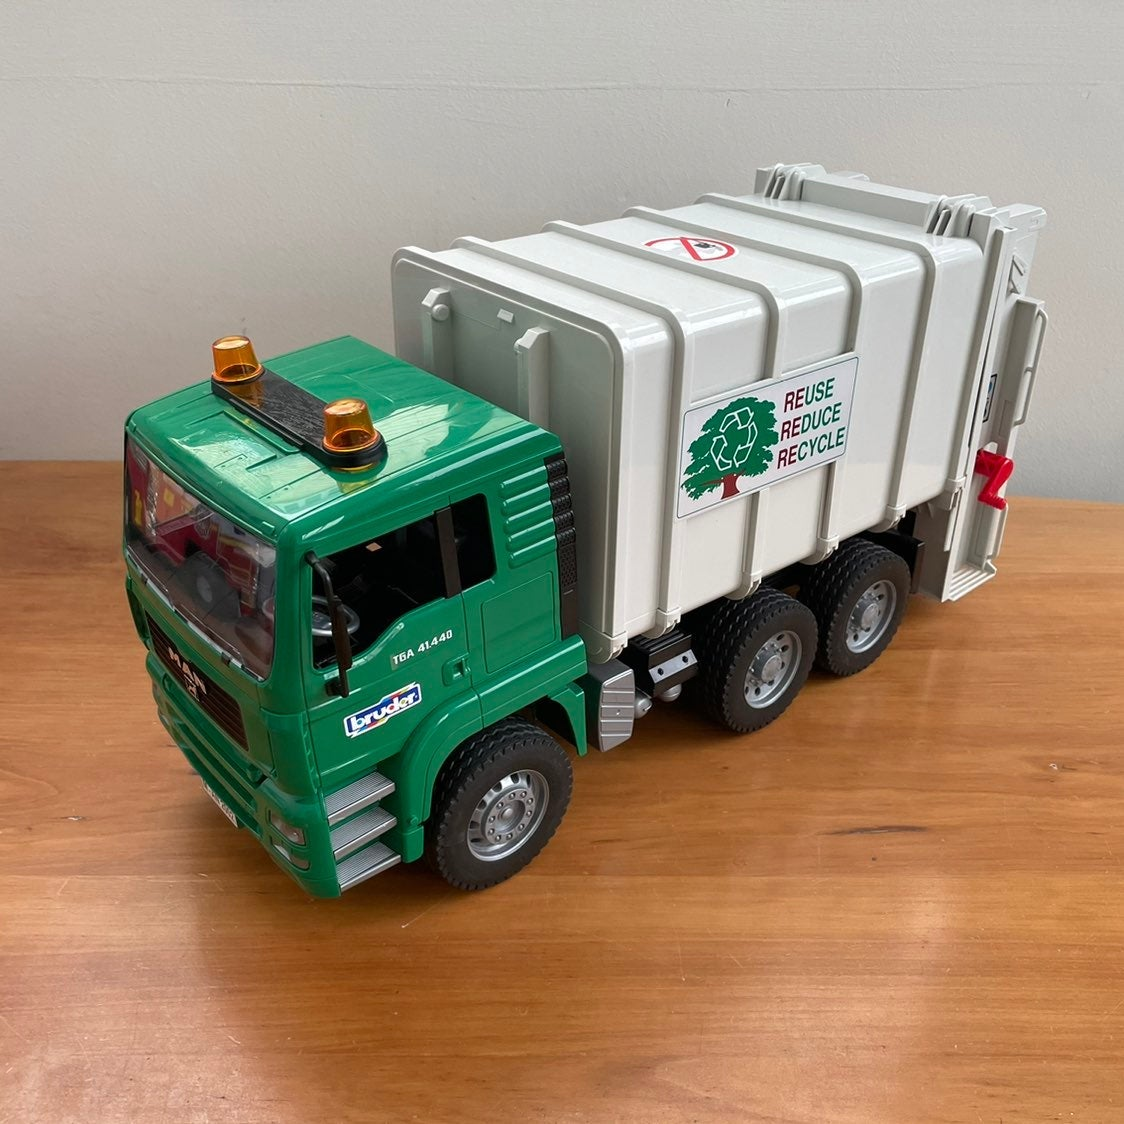 Bruder recycling truck with bins